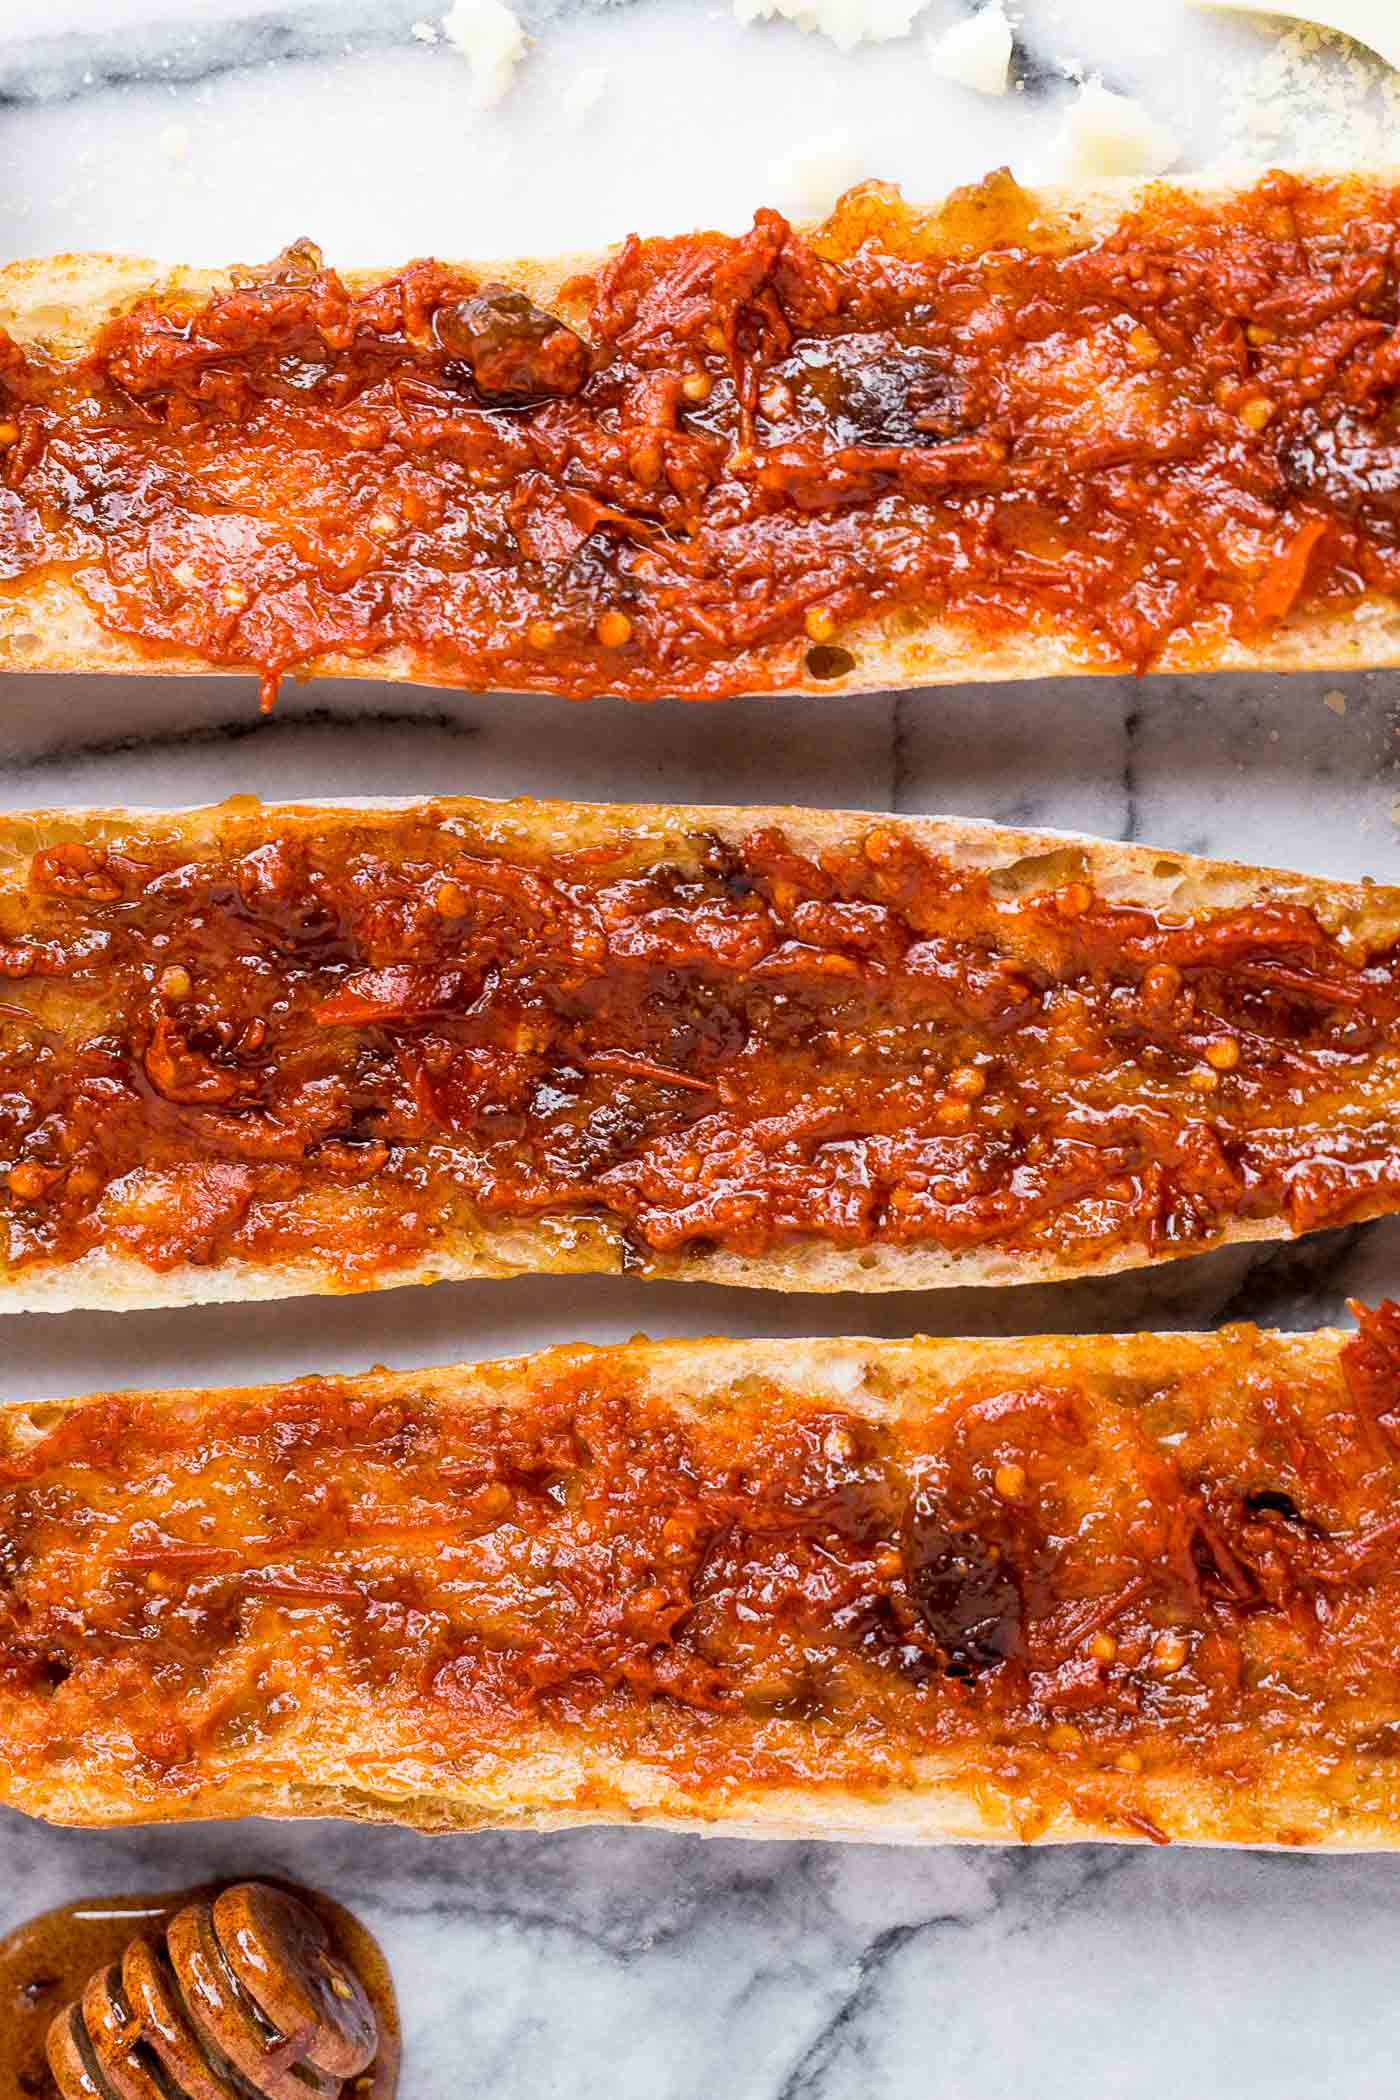 easy chorizo french breads with manchego, fig spread, & harissa, & covered in big fat drizzles of homemade spicy paprika honey. an easy & elegant appetizer! an easy & elegant appetizer or snack, perfect for holiday entertaining! #playswellwithbutter #chorizo #harissa #manchego #holidayparty #cocktailparty #appetizer